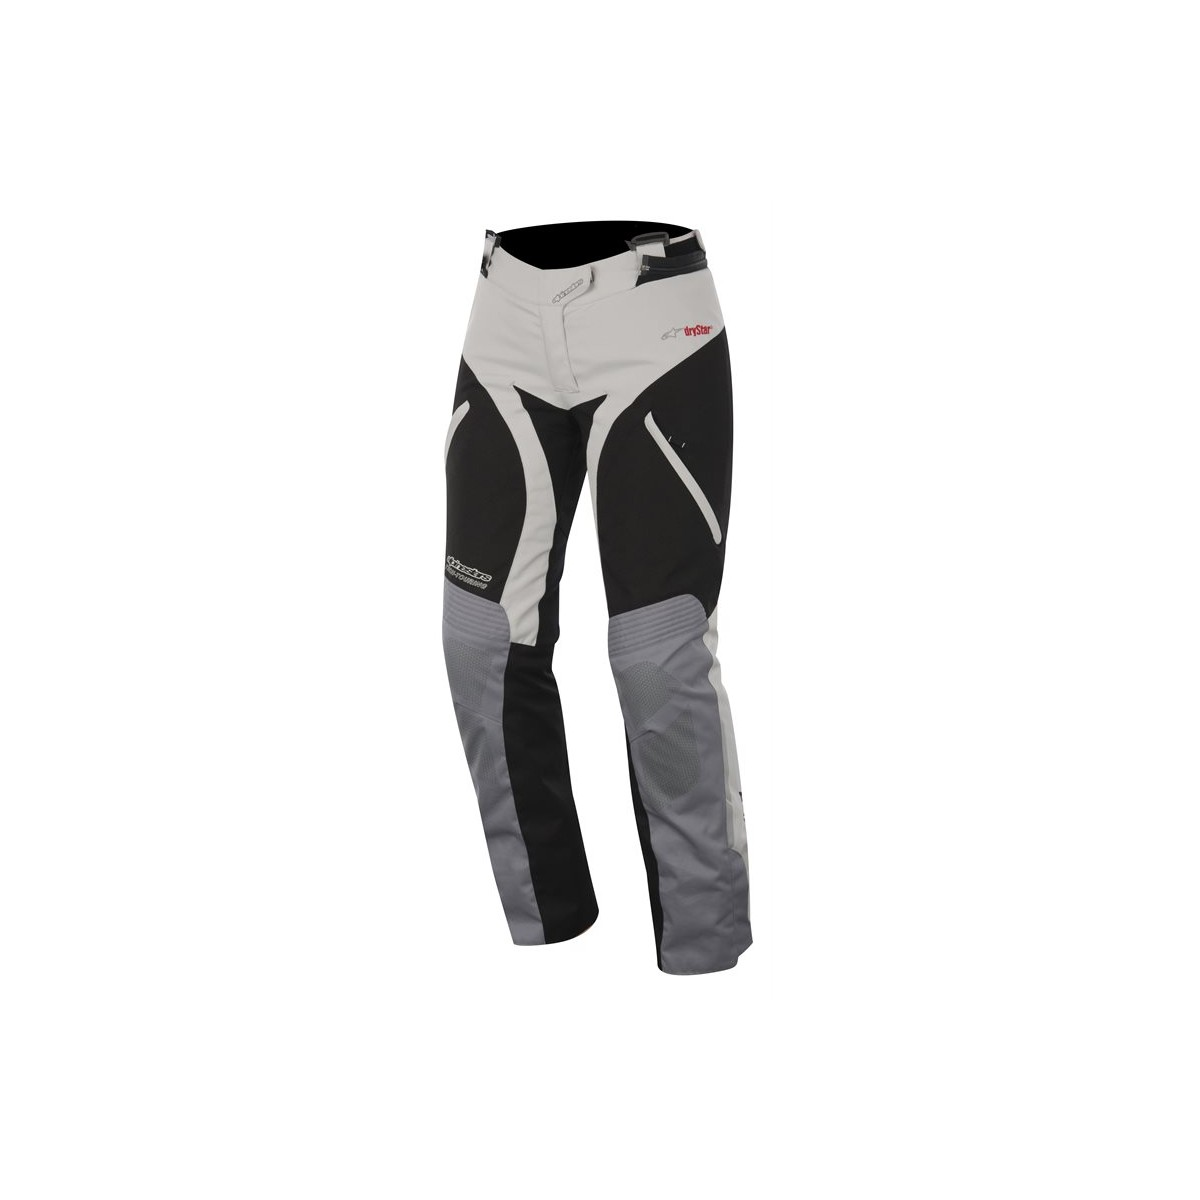 claronegro Alpinestars Andes Drystar Stella zoom Pantalones gris Loading qFTwPdRXS